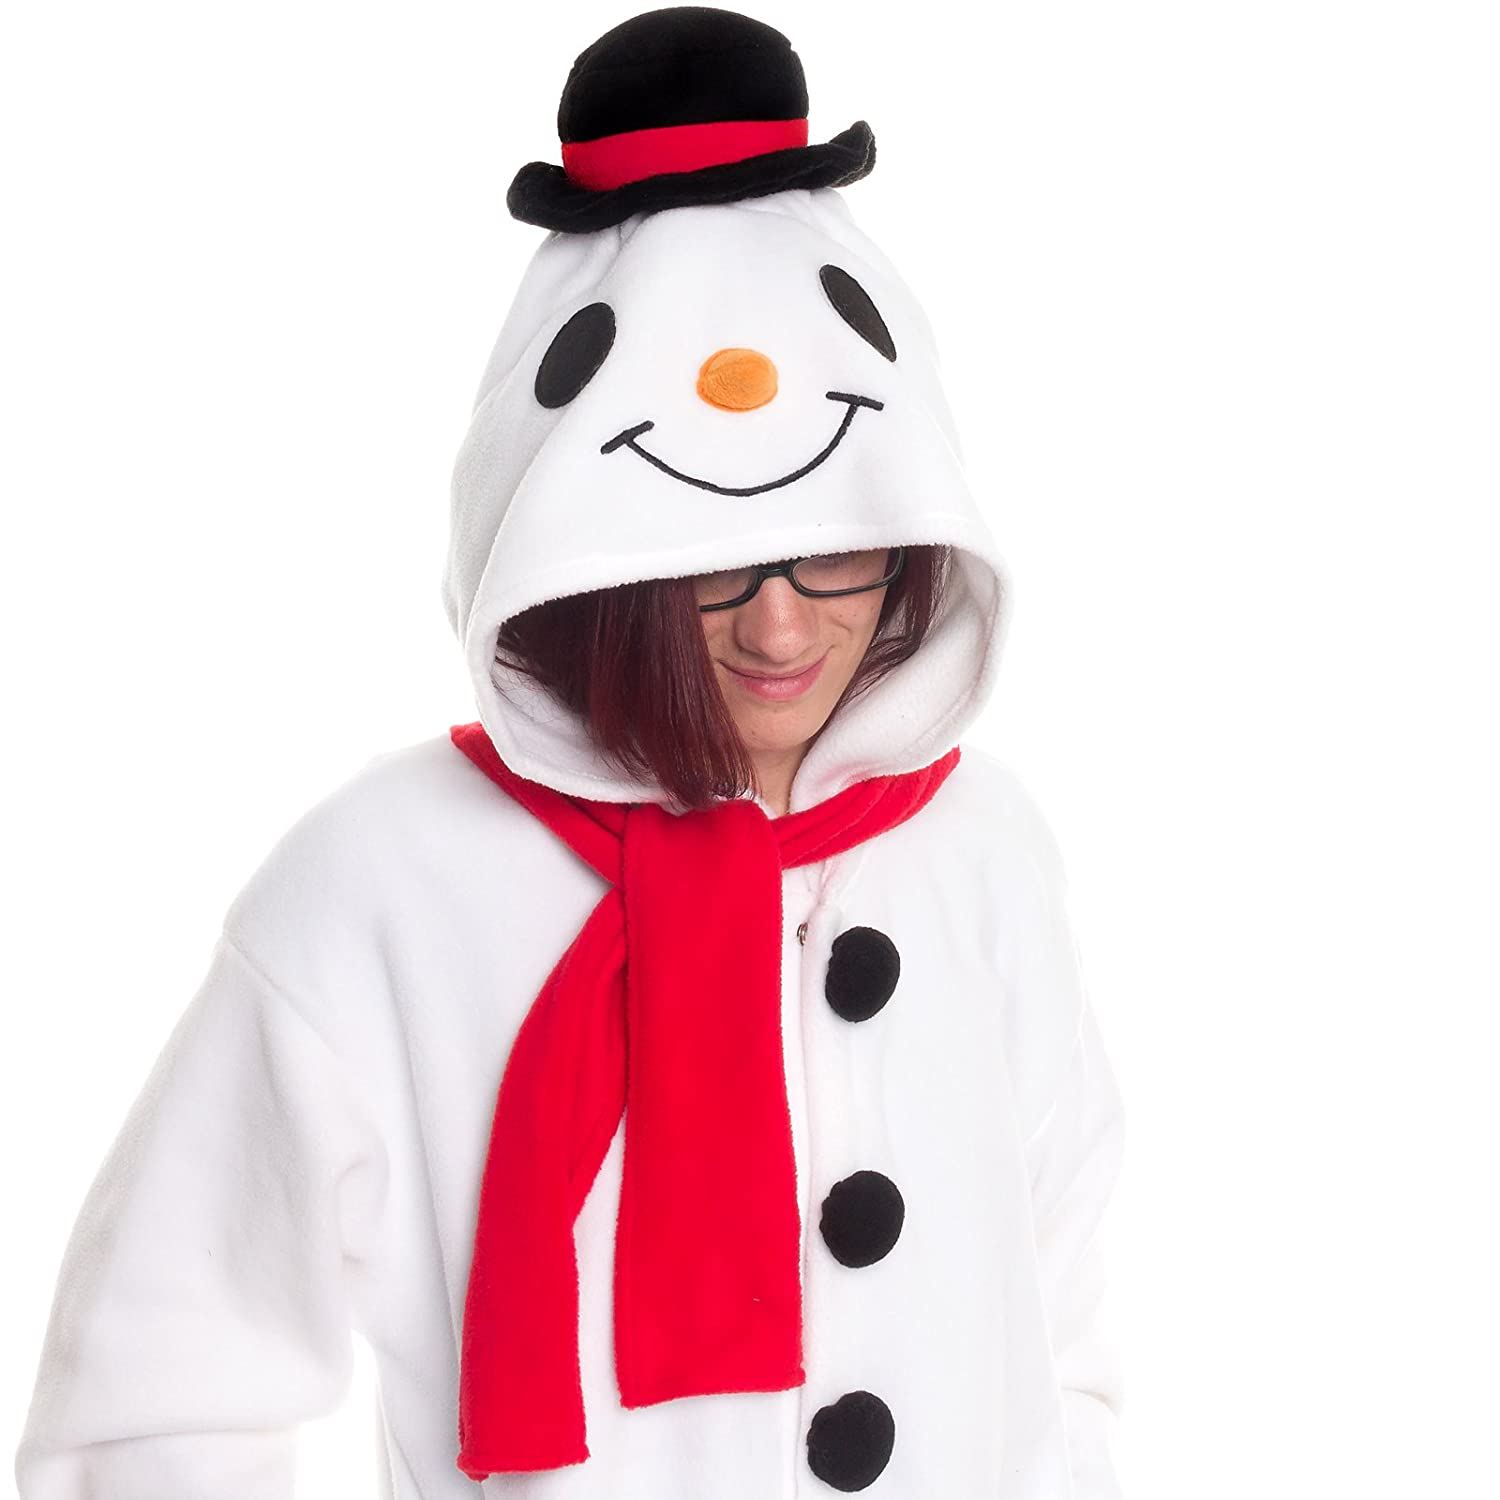 Silver Lilly Unisex Pajamas - Plush One Piece Cosplay Holiday Snowman Costume